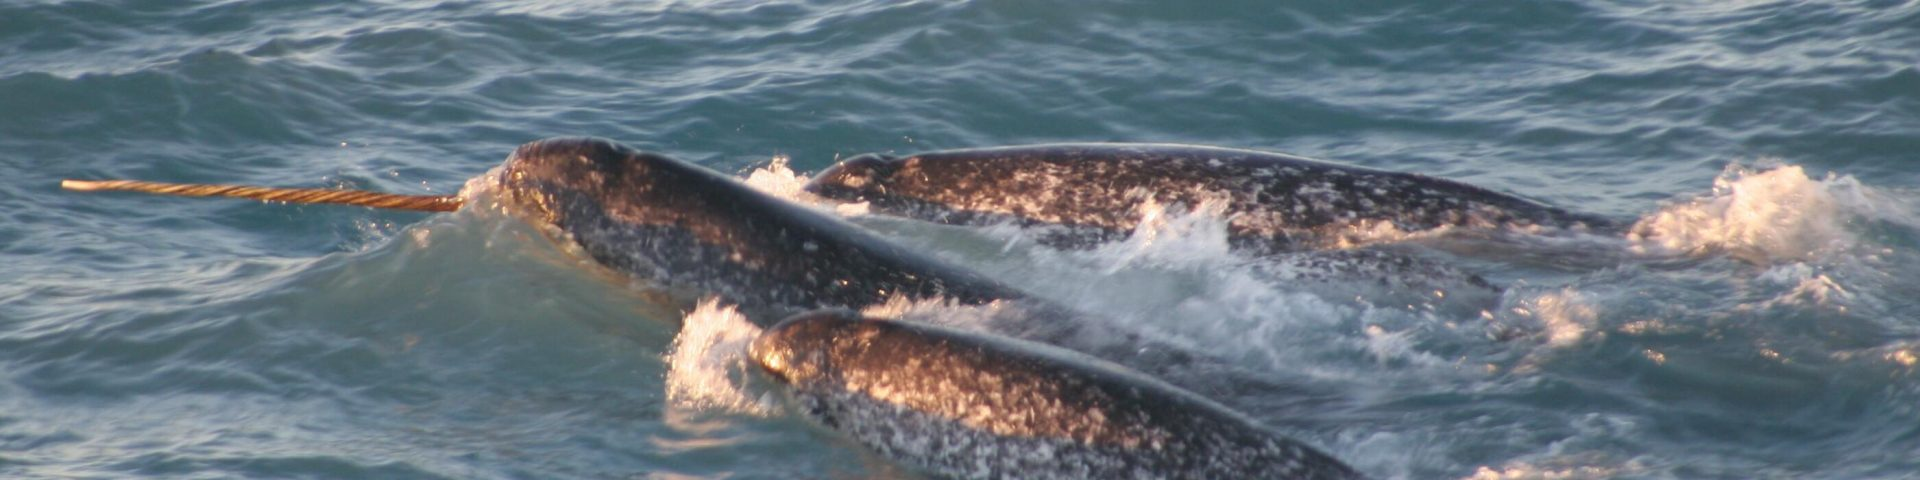 Inuit and Scientists Are Bringing Narwhals and the Melting Arctic Into Focus